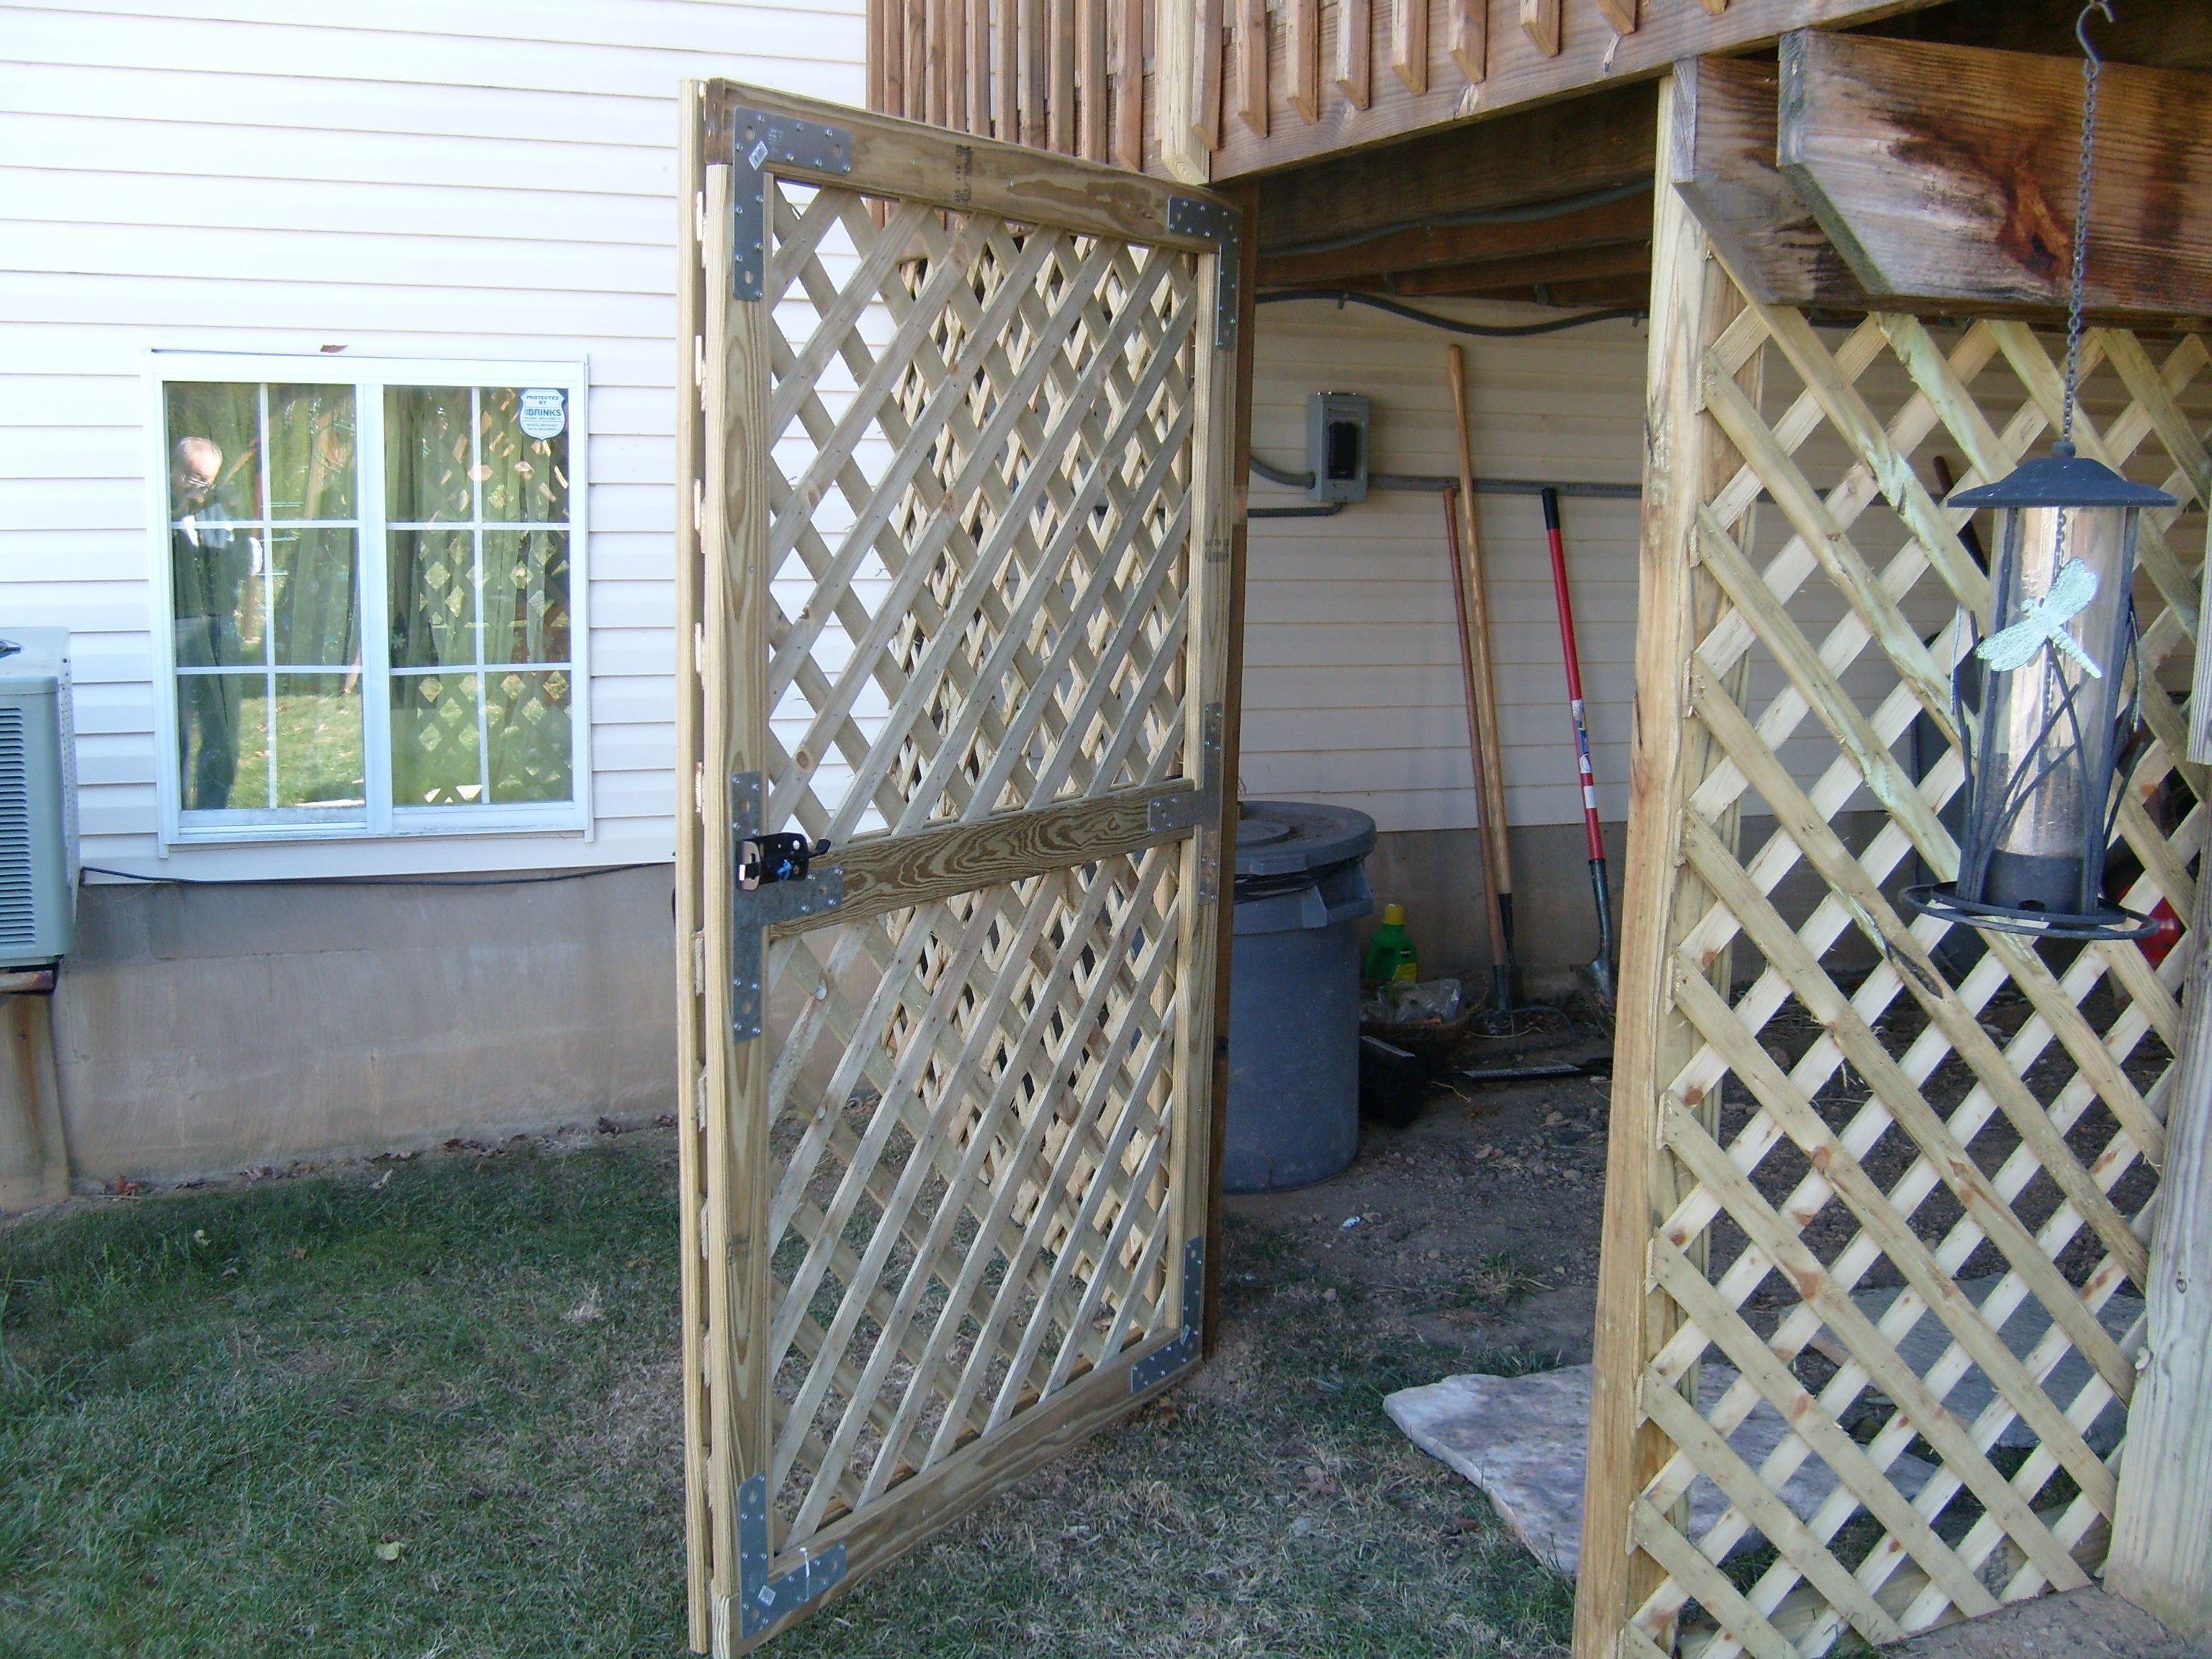 Grande Lattice Door Under Deck Lattice Door Under Deck Home Pinterest Deck Under Deck Storage Lawn Mower Under Deck Storage Ideas houzz-03 Under Deck Storage